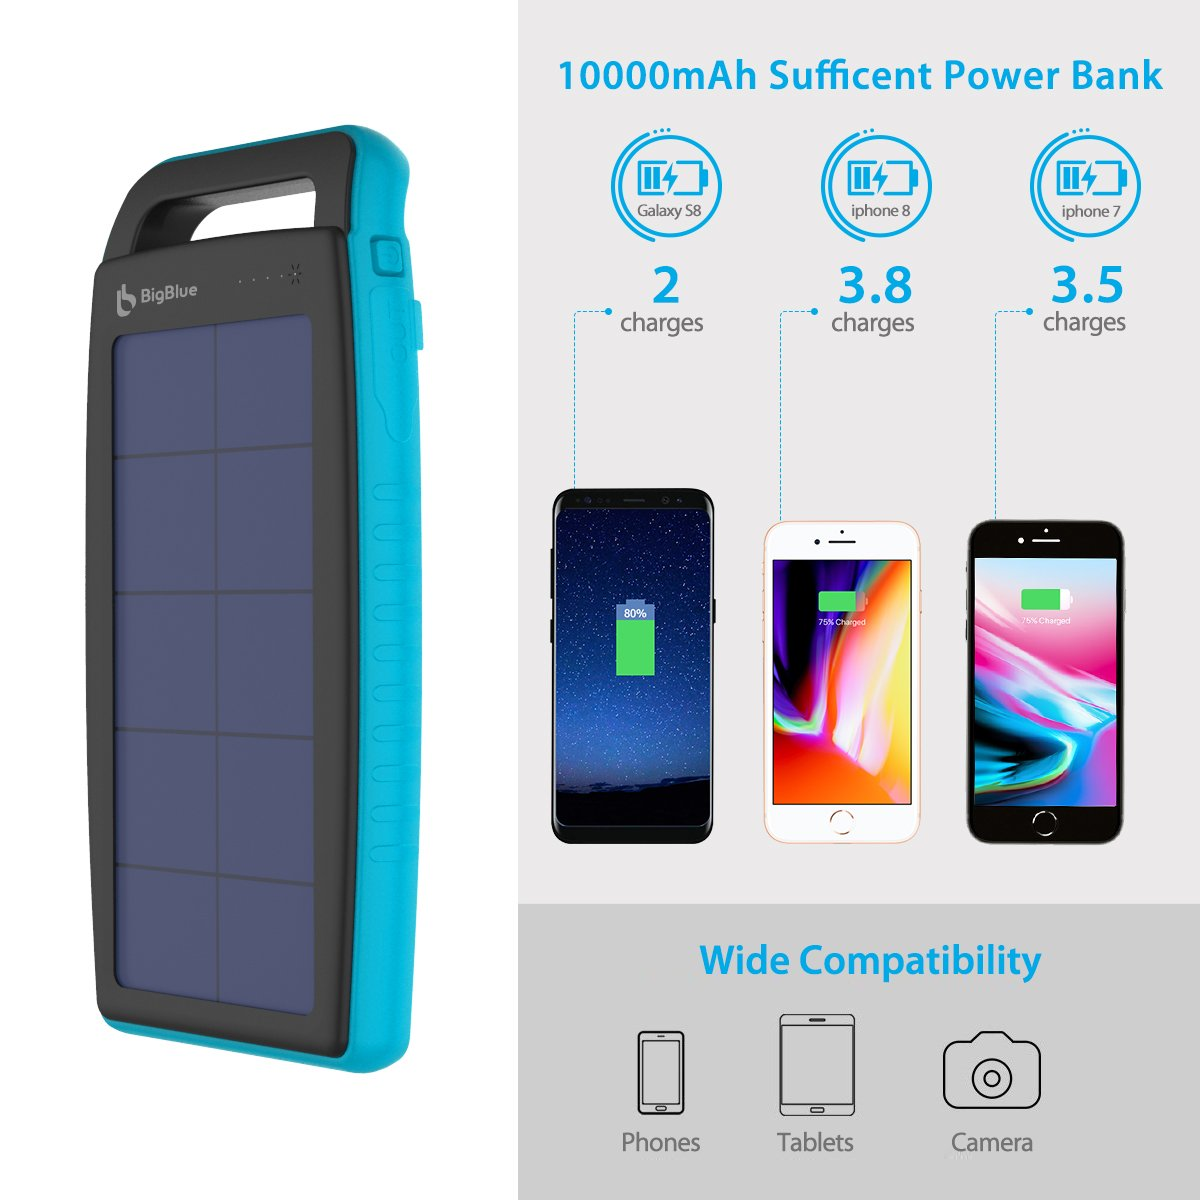 BigBlue Solar Battery Charger, 10000mAh IPX4 Waterproof Dual USB Ports Emergency Solar Powered Charger 6 LED Light Fast Charging Cellphone Tablet More Devices, Blue by BigBlue (Image #7)